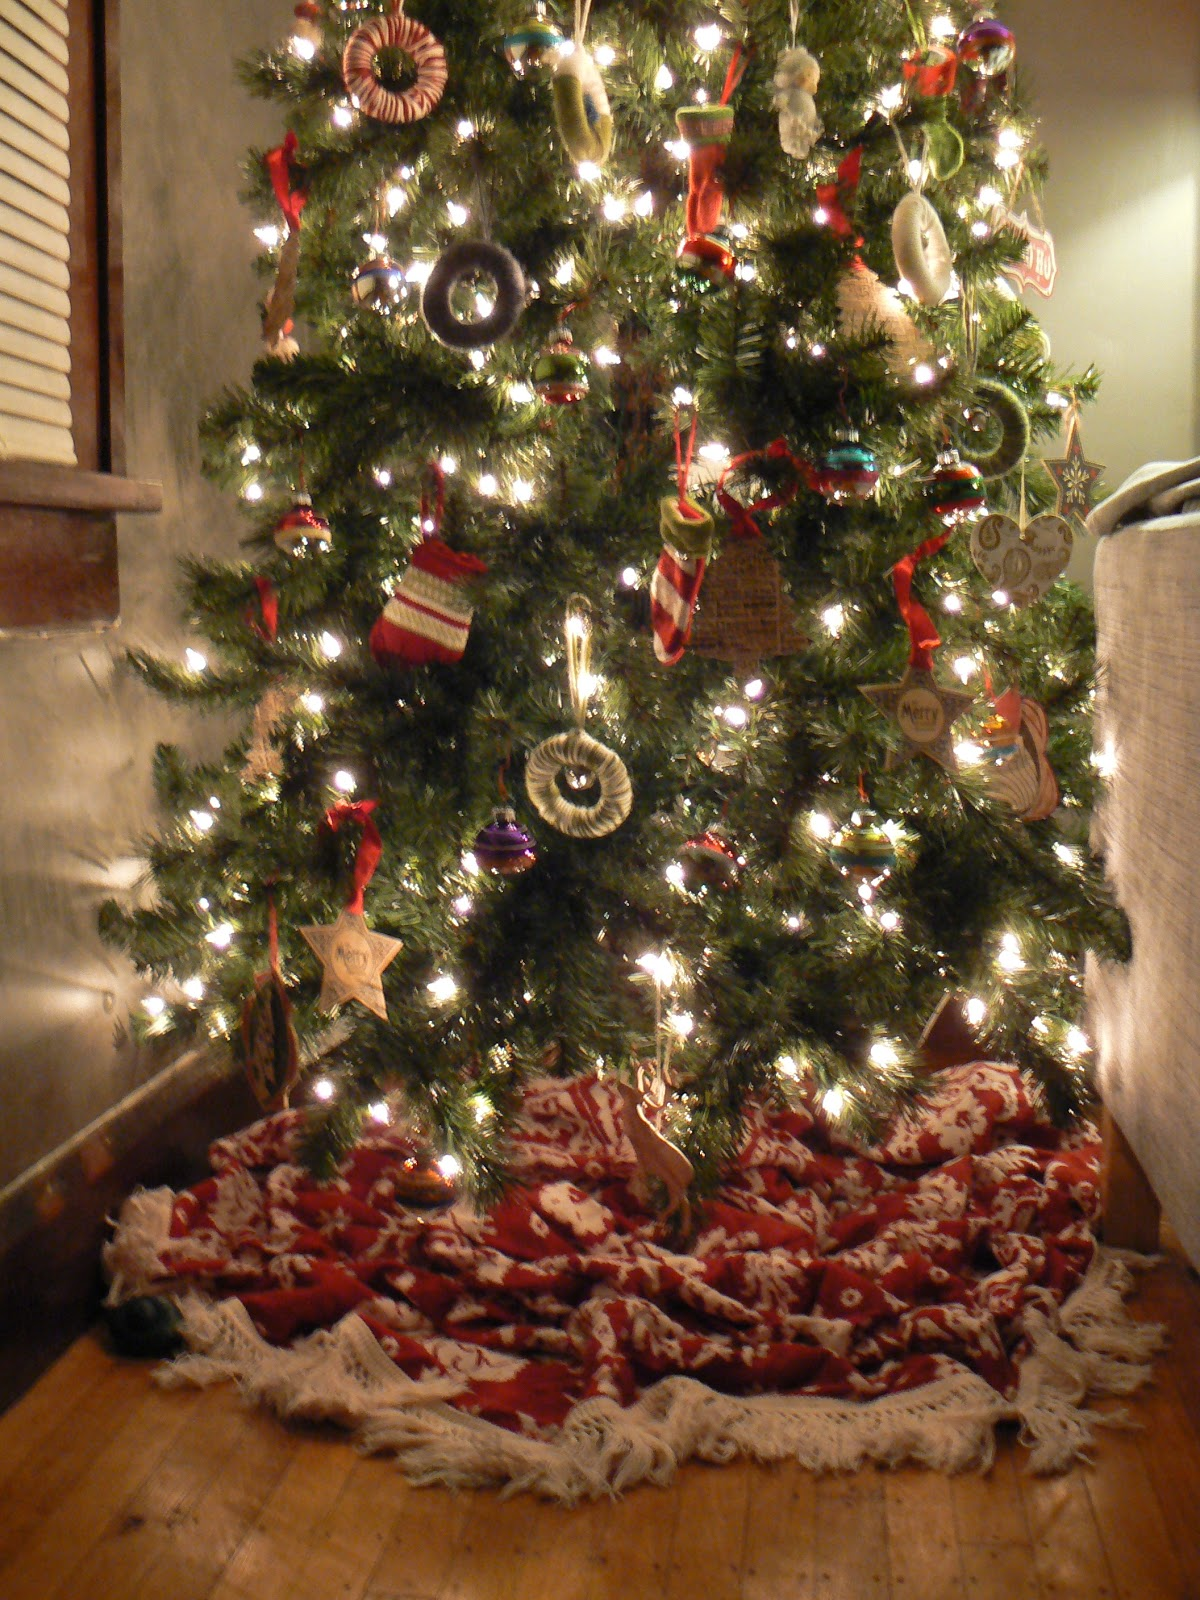 this blanket does the job of a real tree skirt just as well as a store bought one you could also use a sheet a sheepskin a small rug spare fabric - Cheap Christmas Tree Skirts